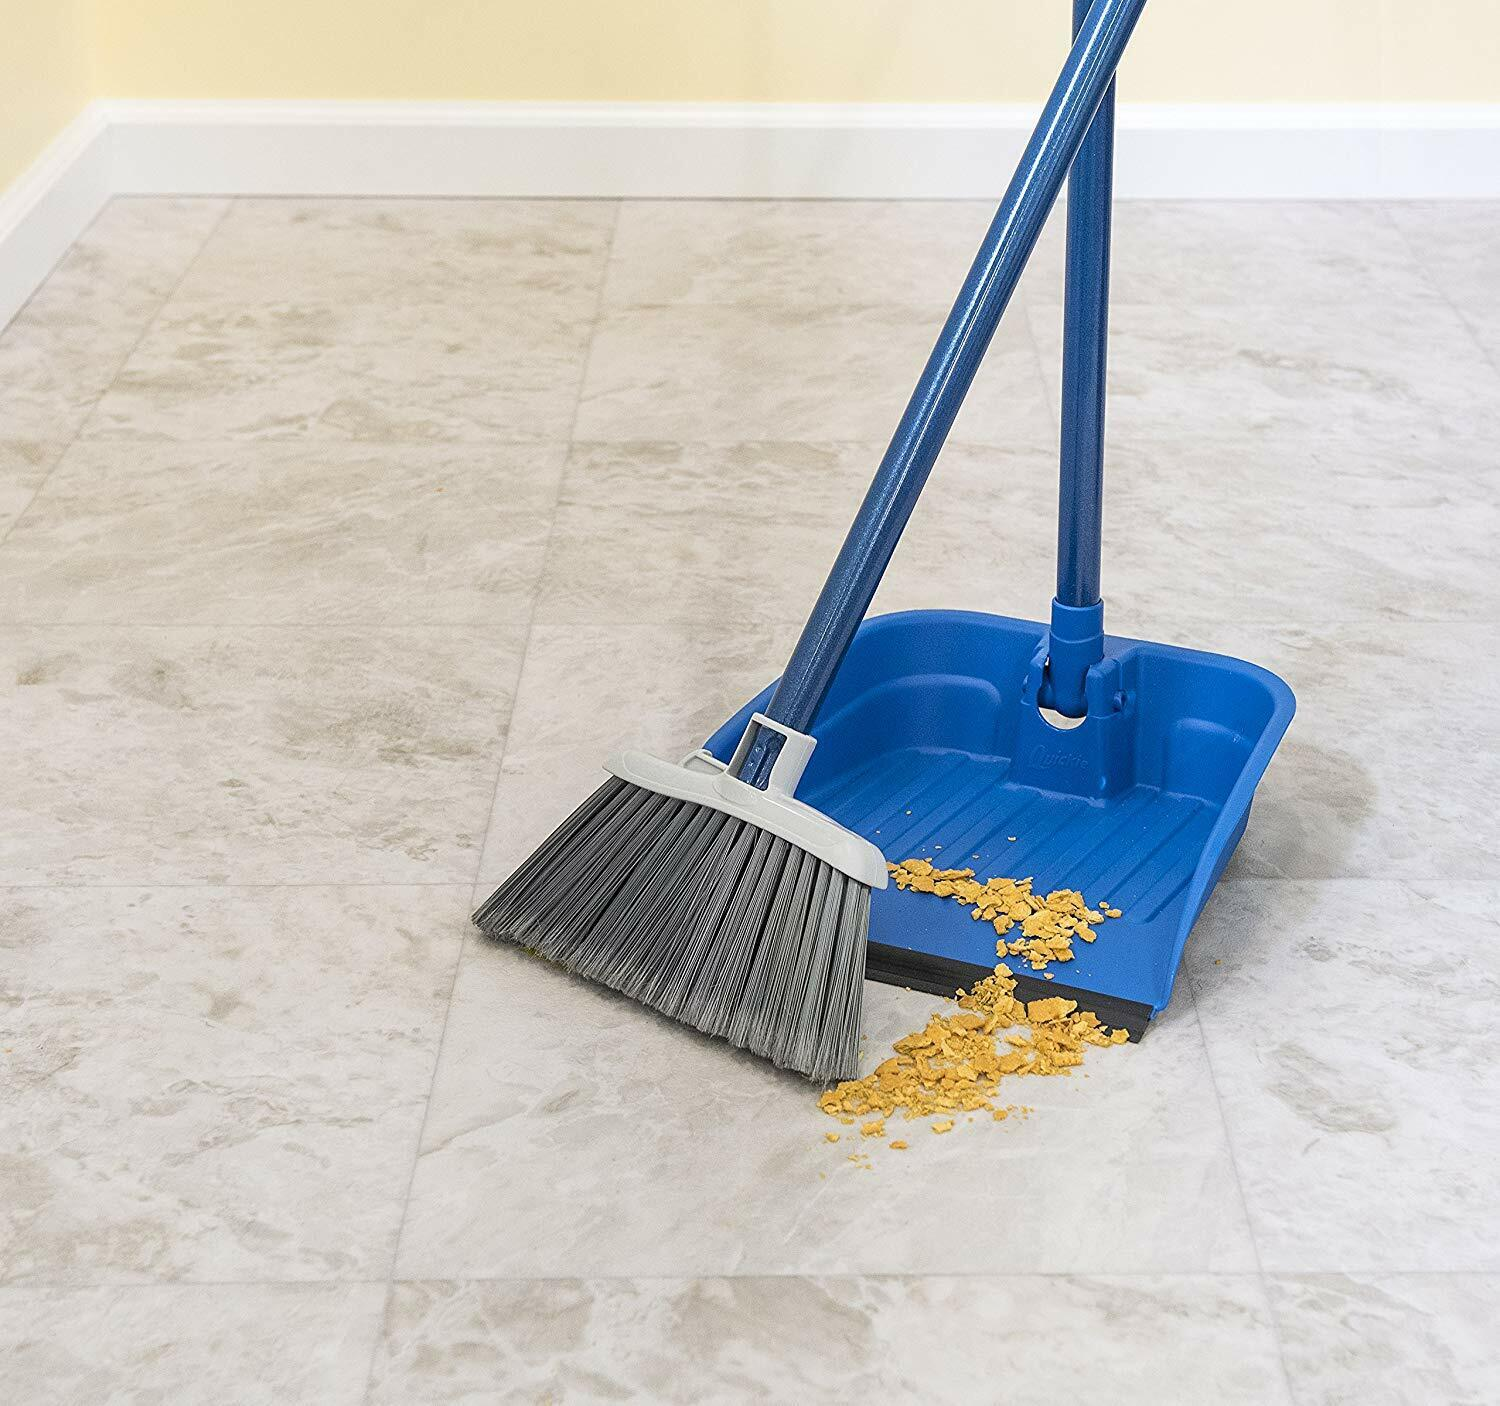 Quickie Stand Store Home Lobby Broom Dustpan Kitchen Floor